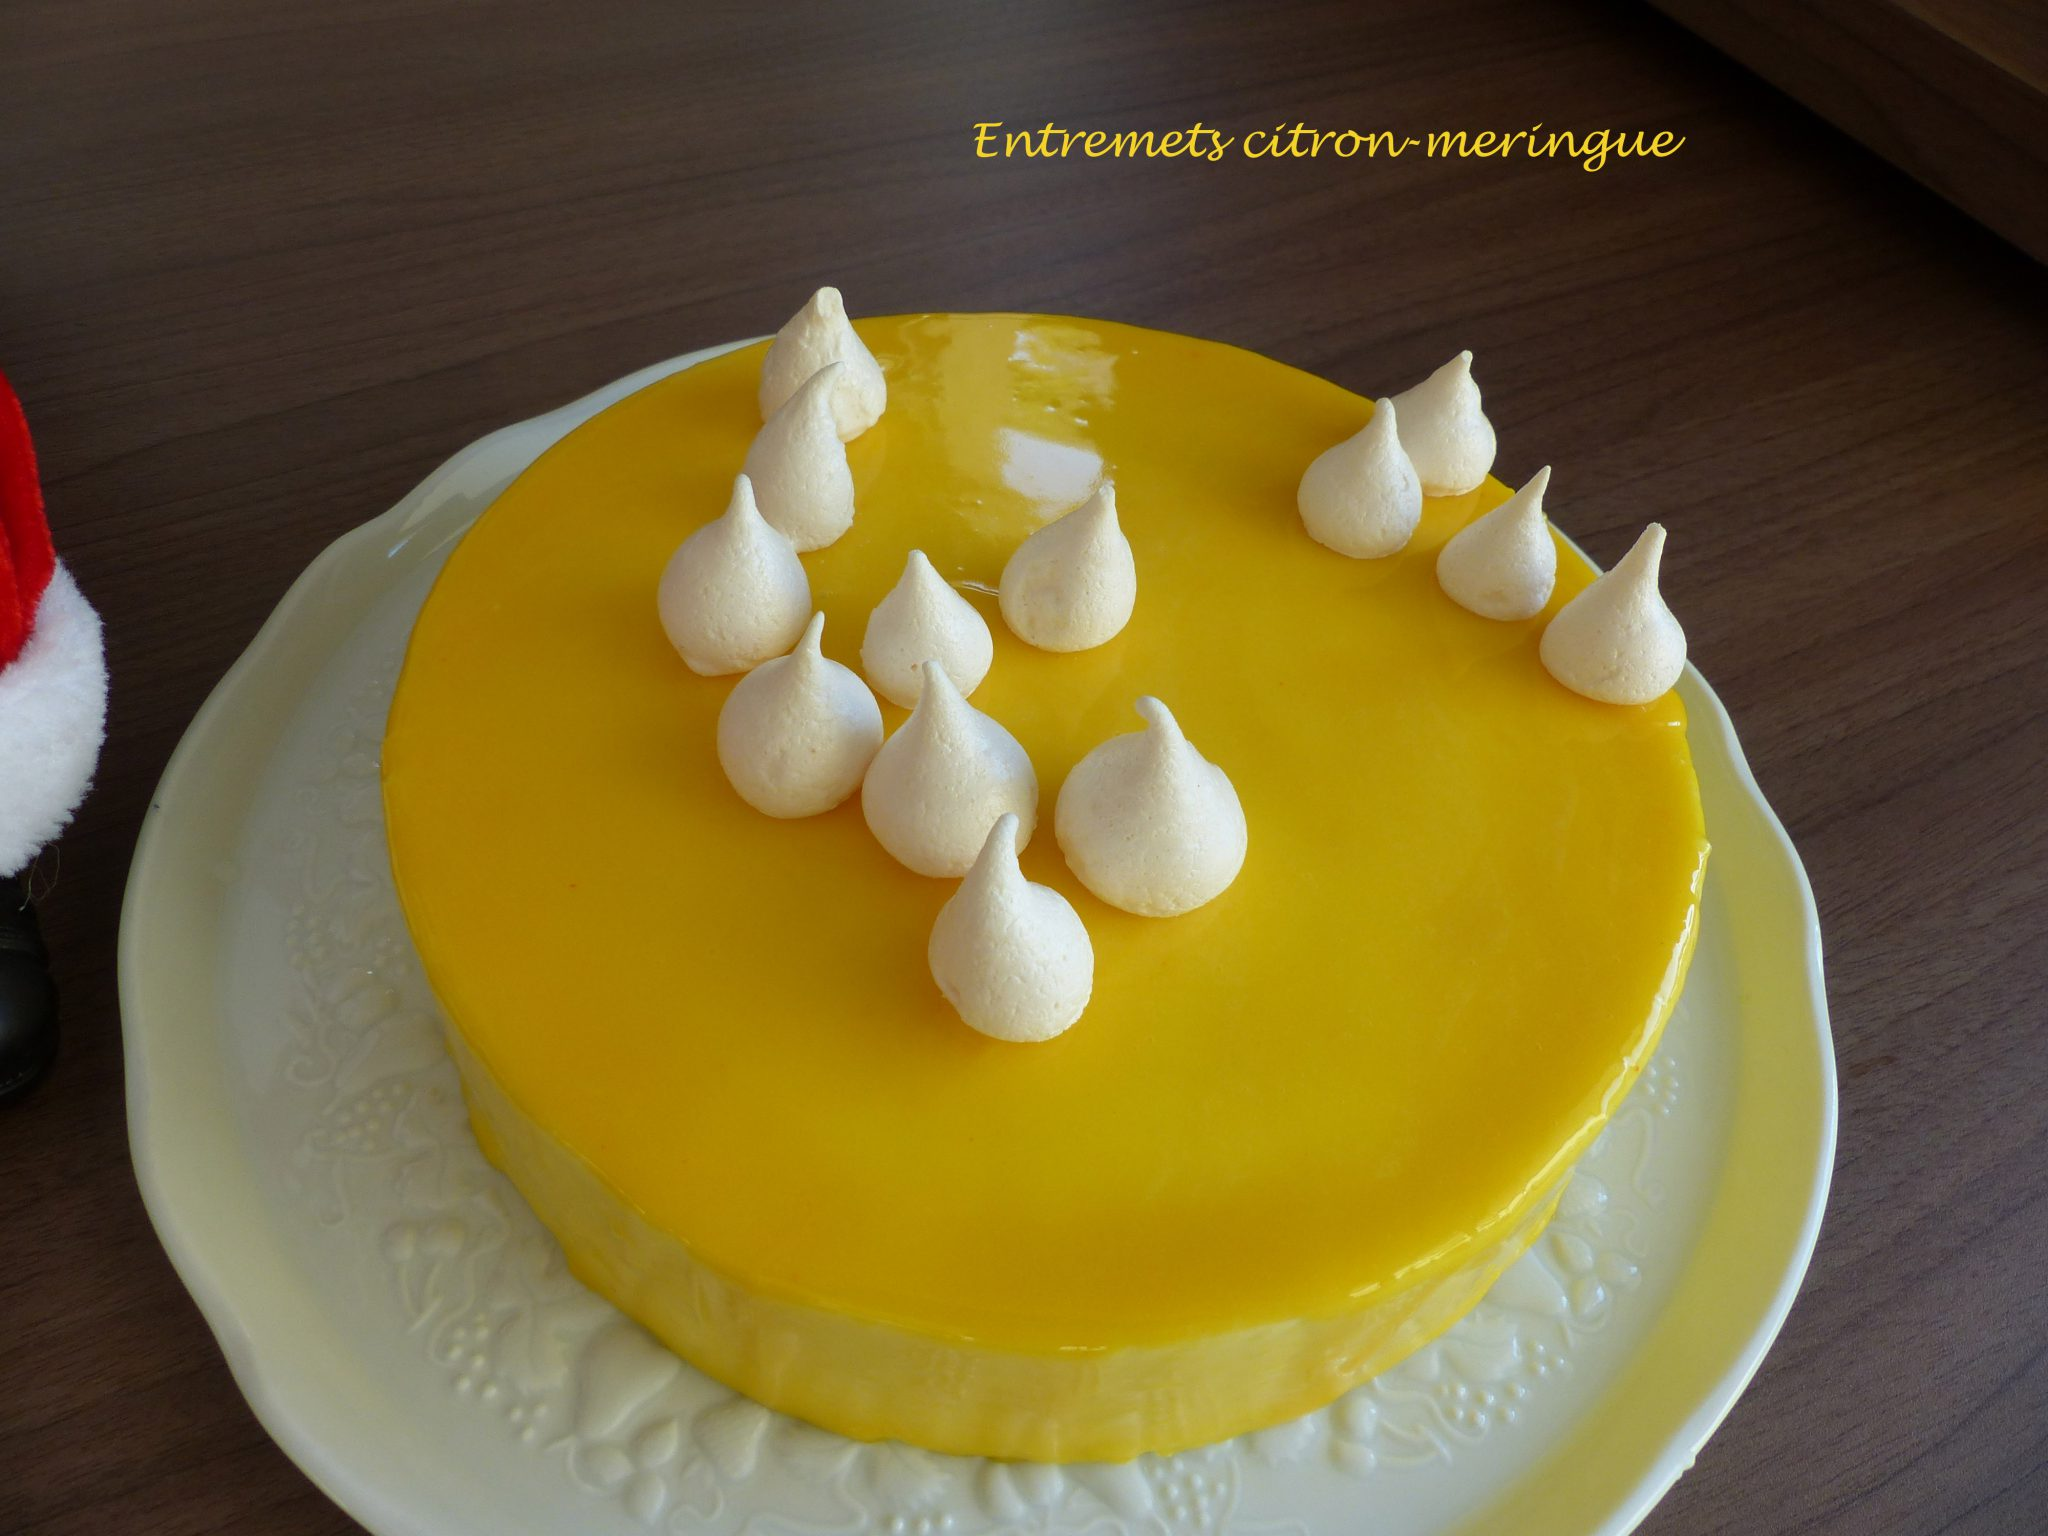 entremets citron meringue croquant fondant gourmand. Black Bedroom Furniture Sets. Home Design Ideas